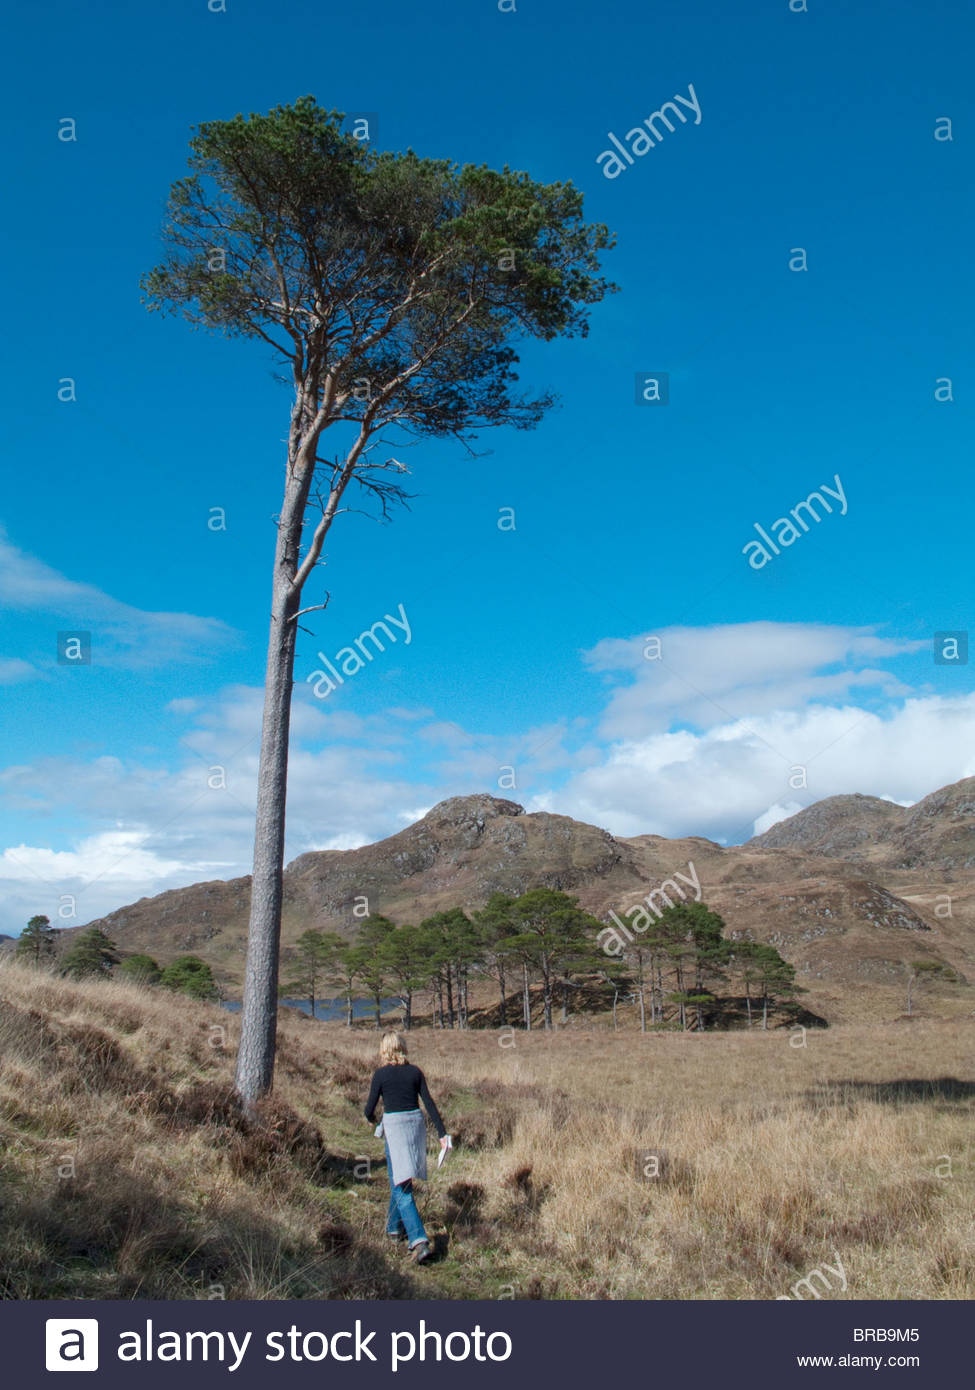 Hiker hiking past tree in remote field under blue sky - Stock Image